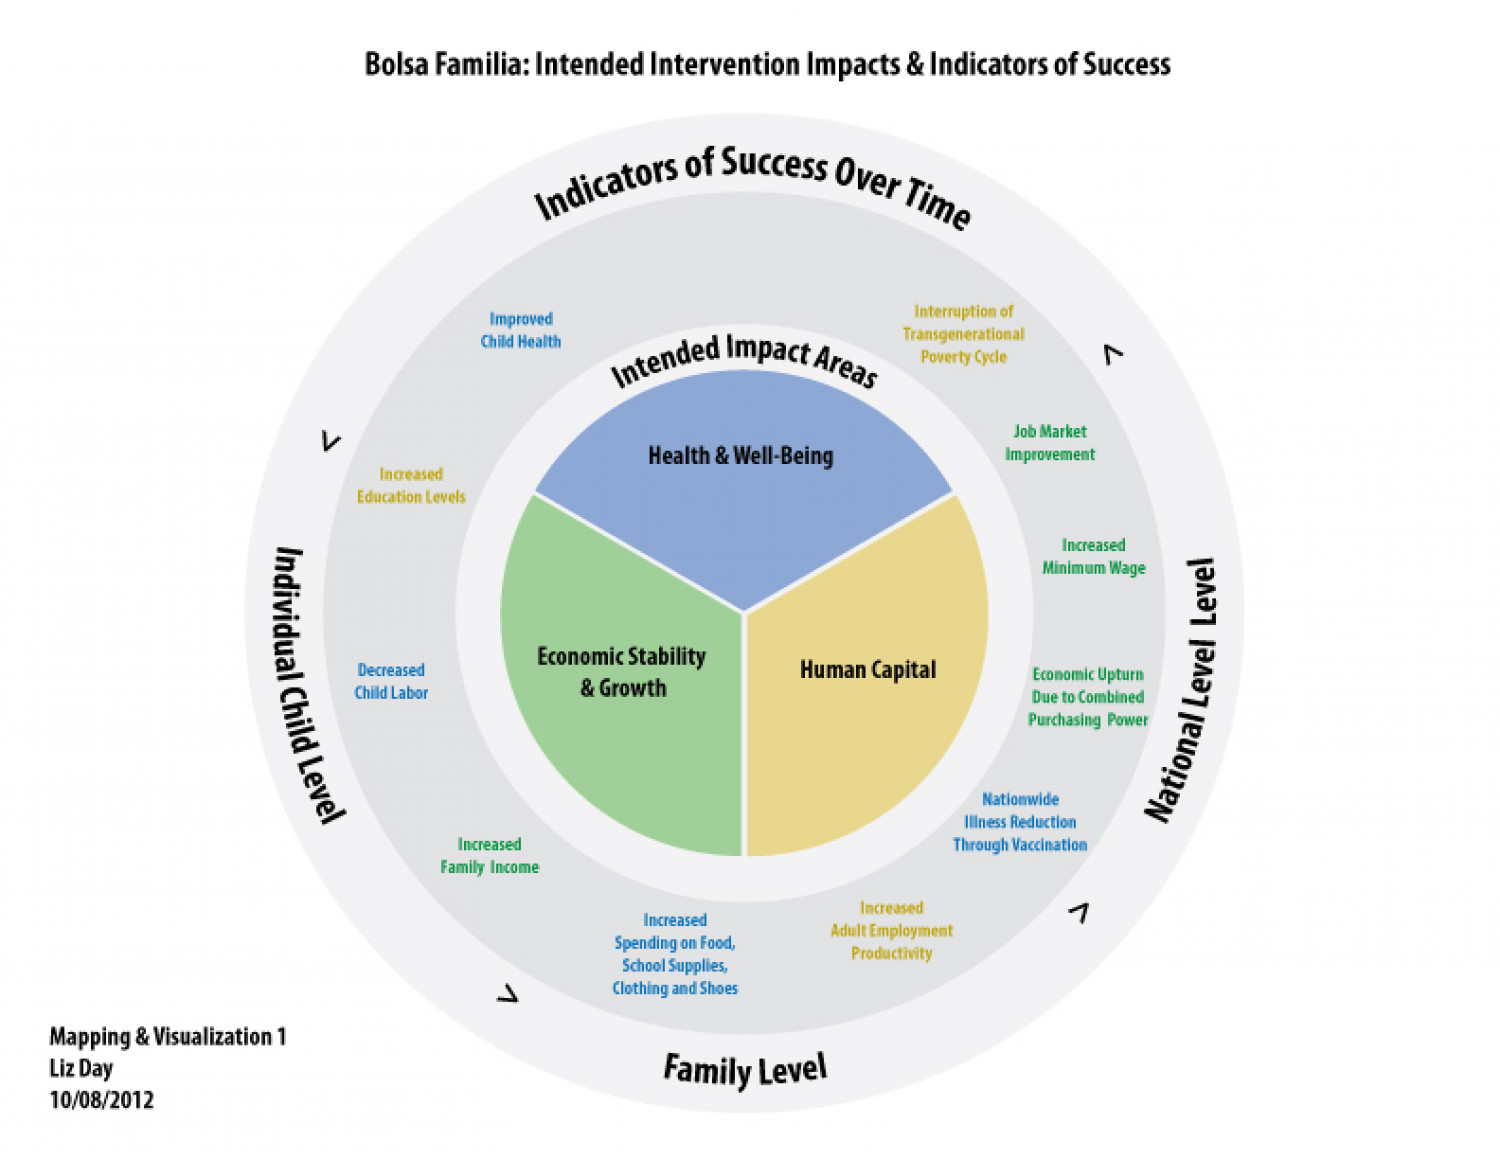 Bolsa Familia: Intended Intervention Impacts & Indicators of Success Infographic